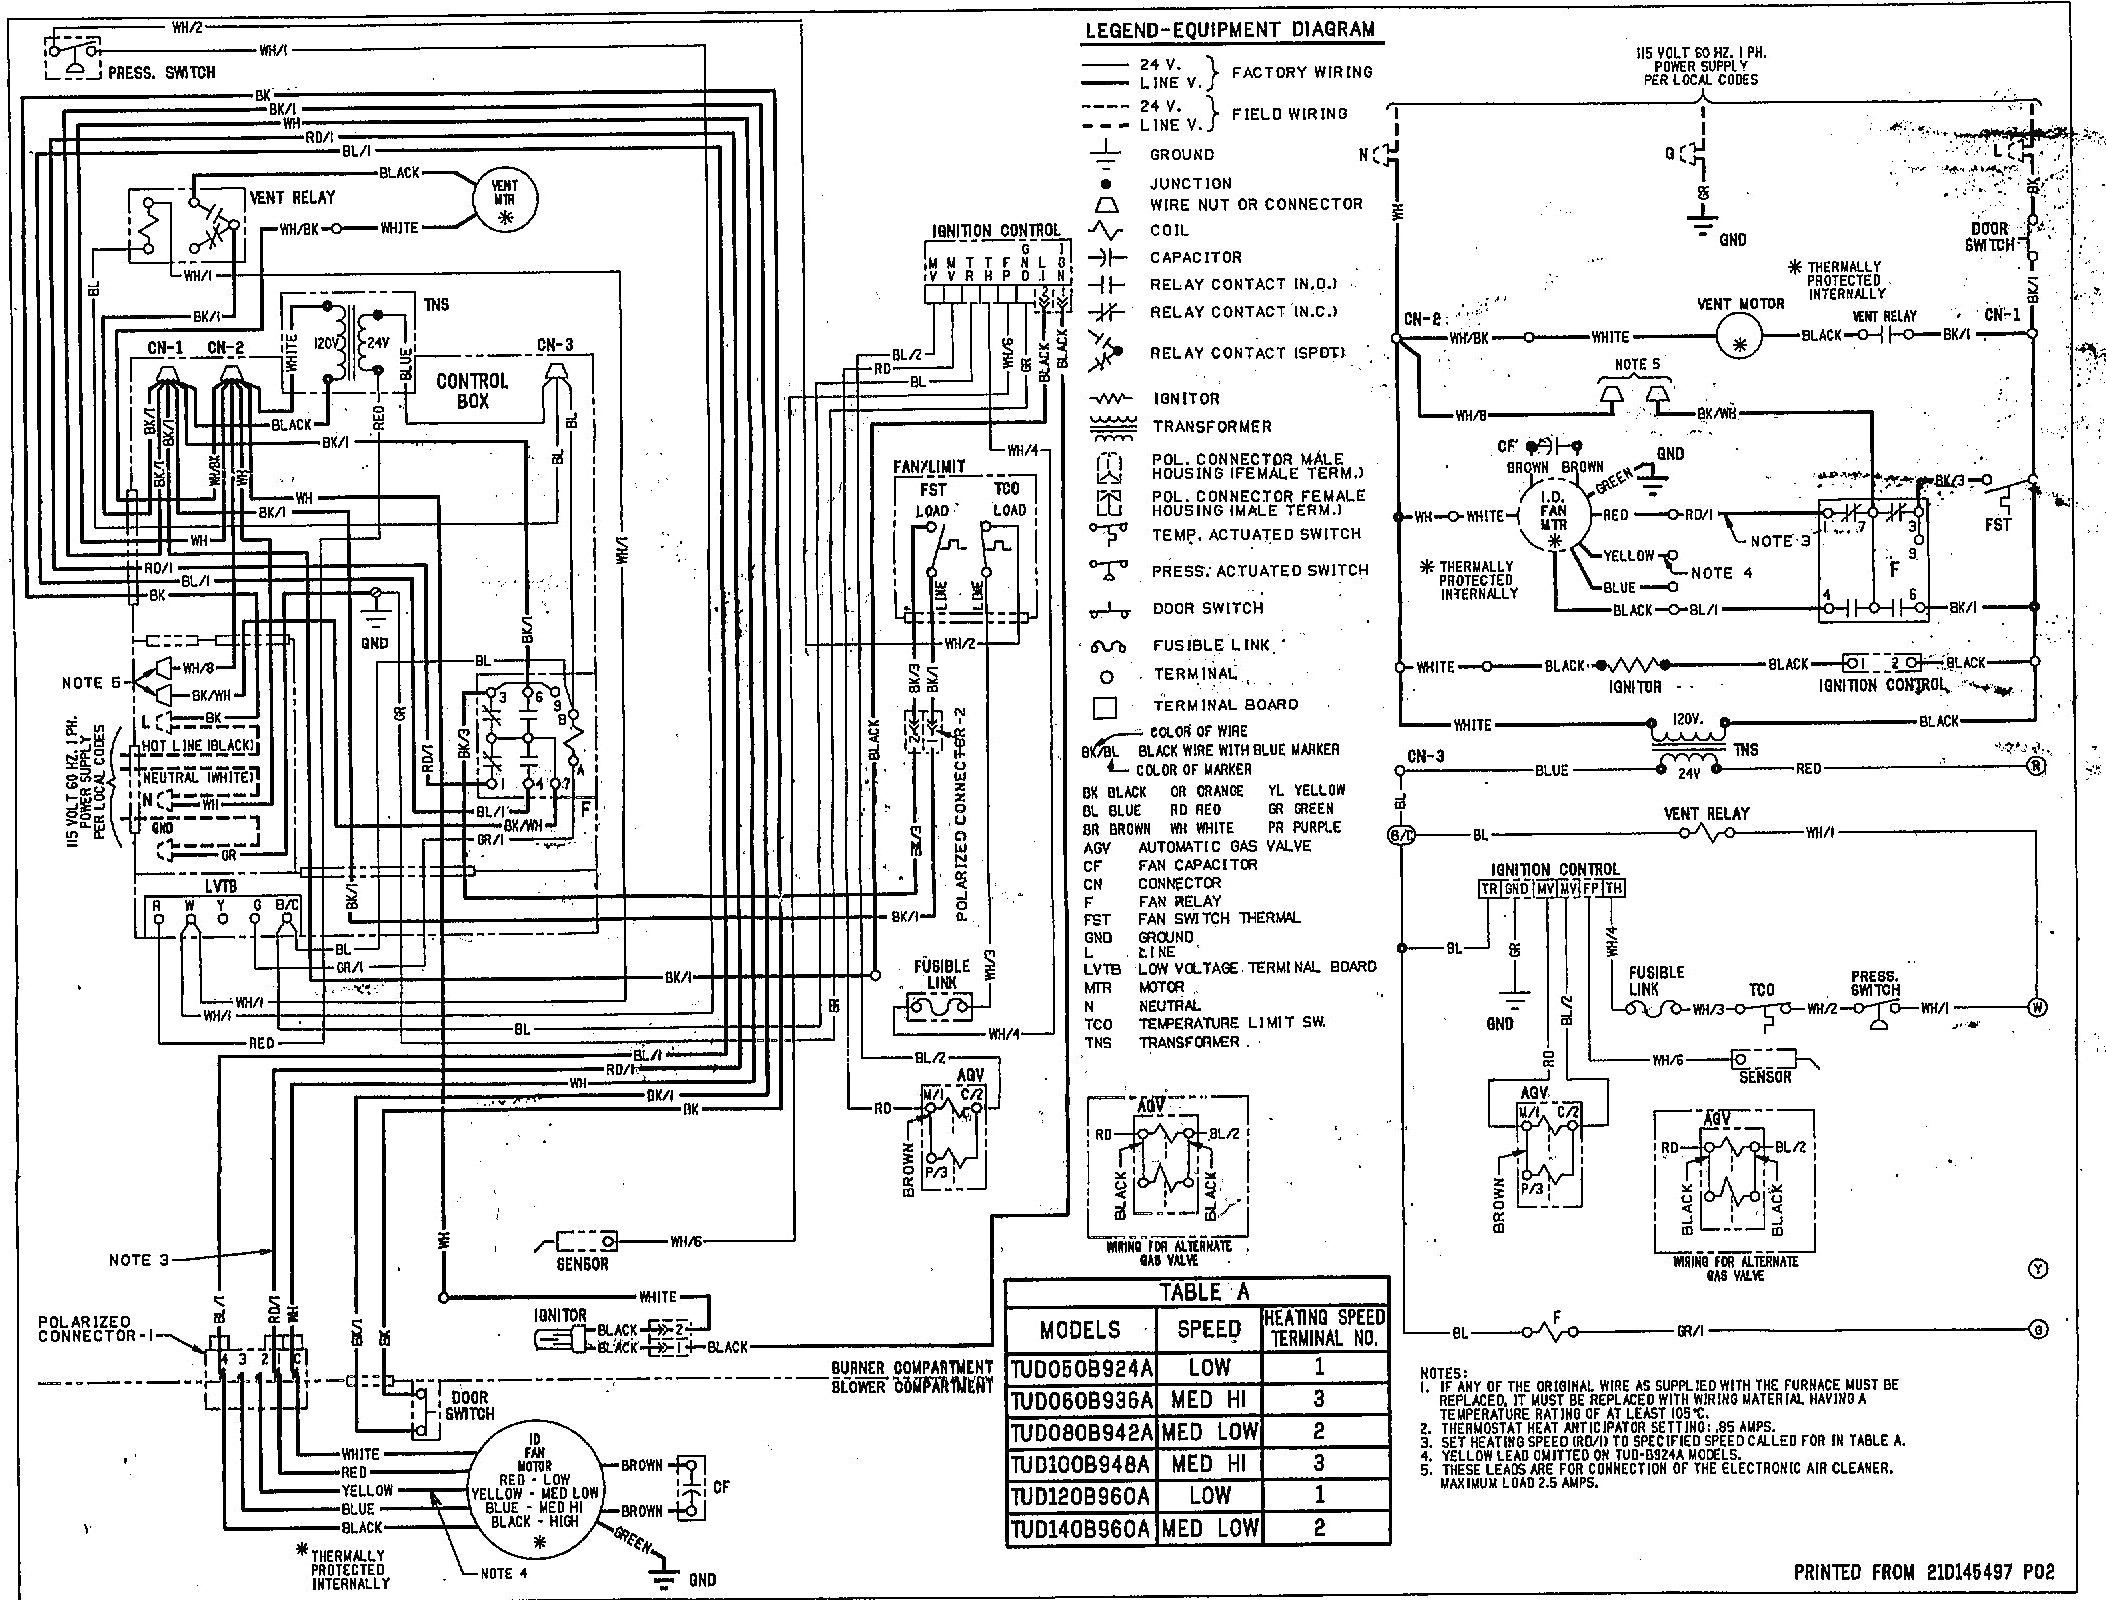 goodman furnace schematic diagram